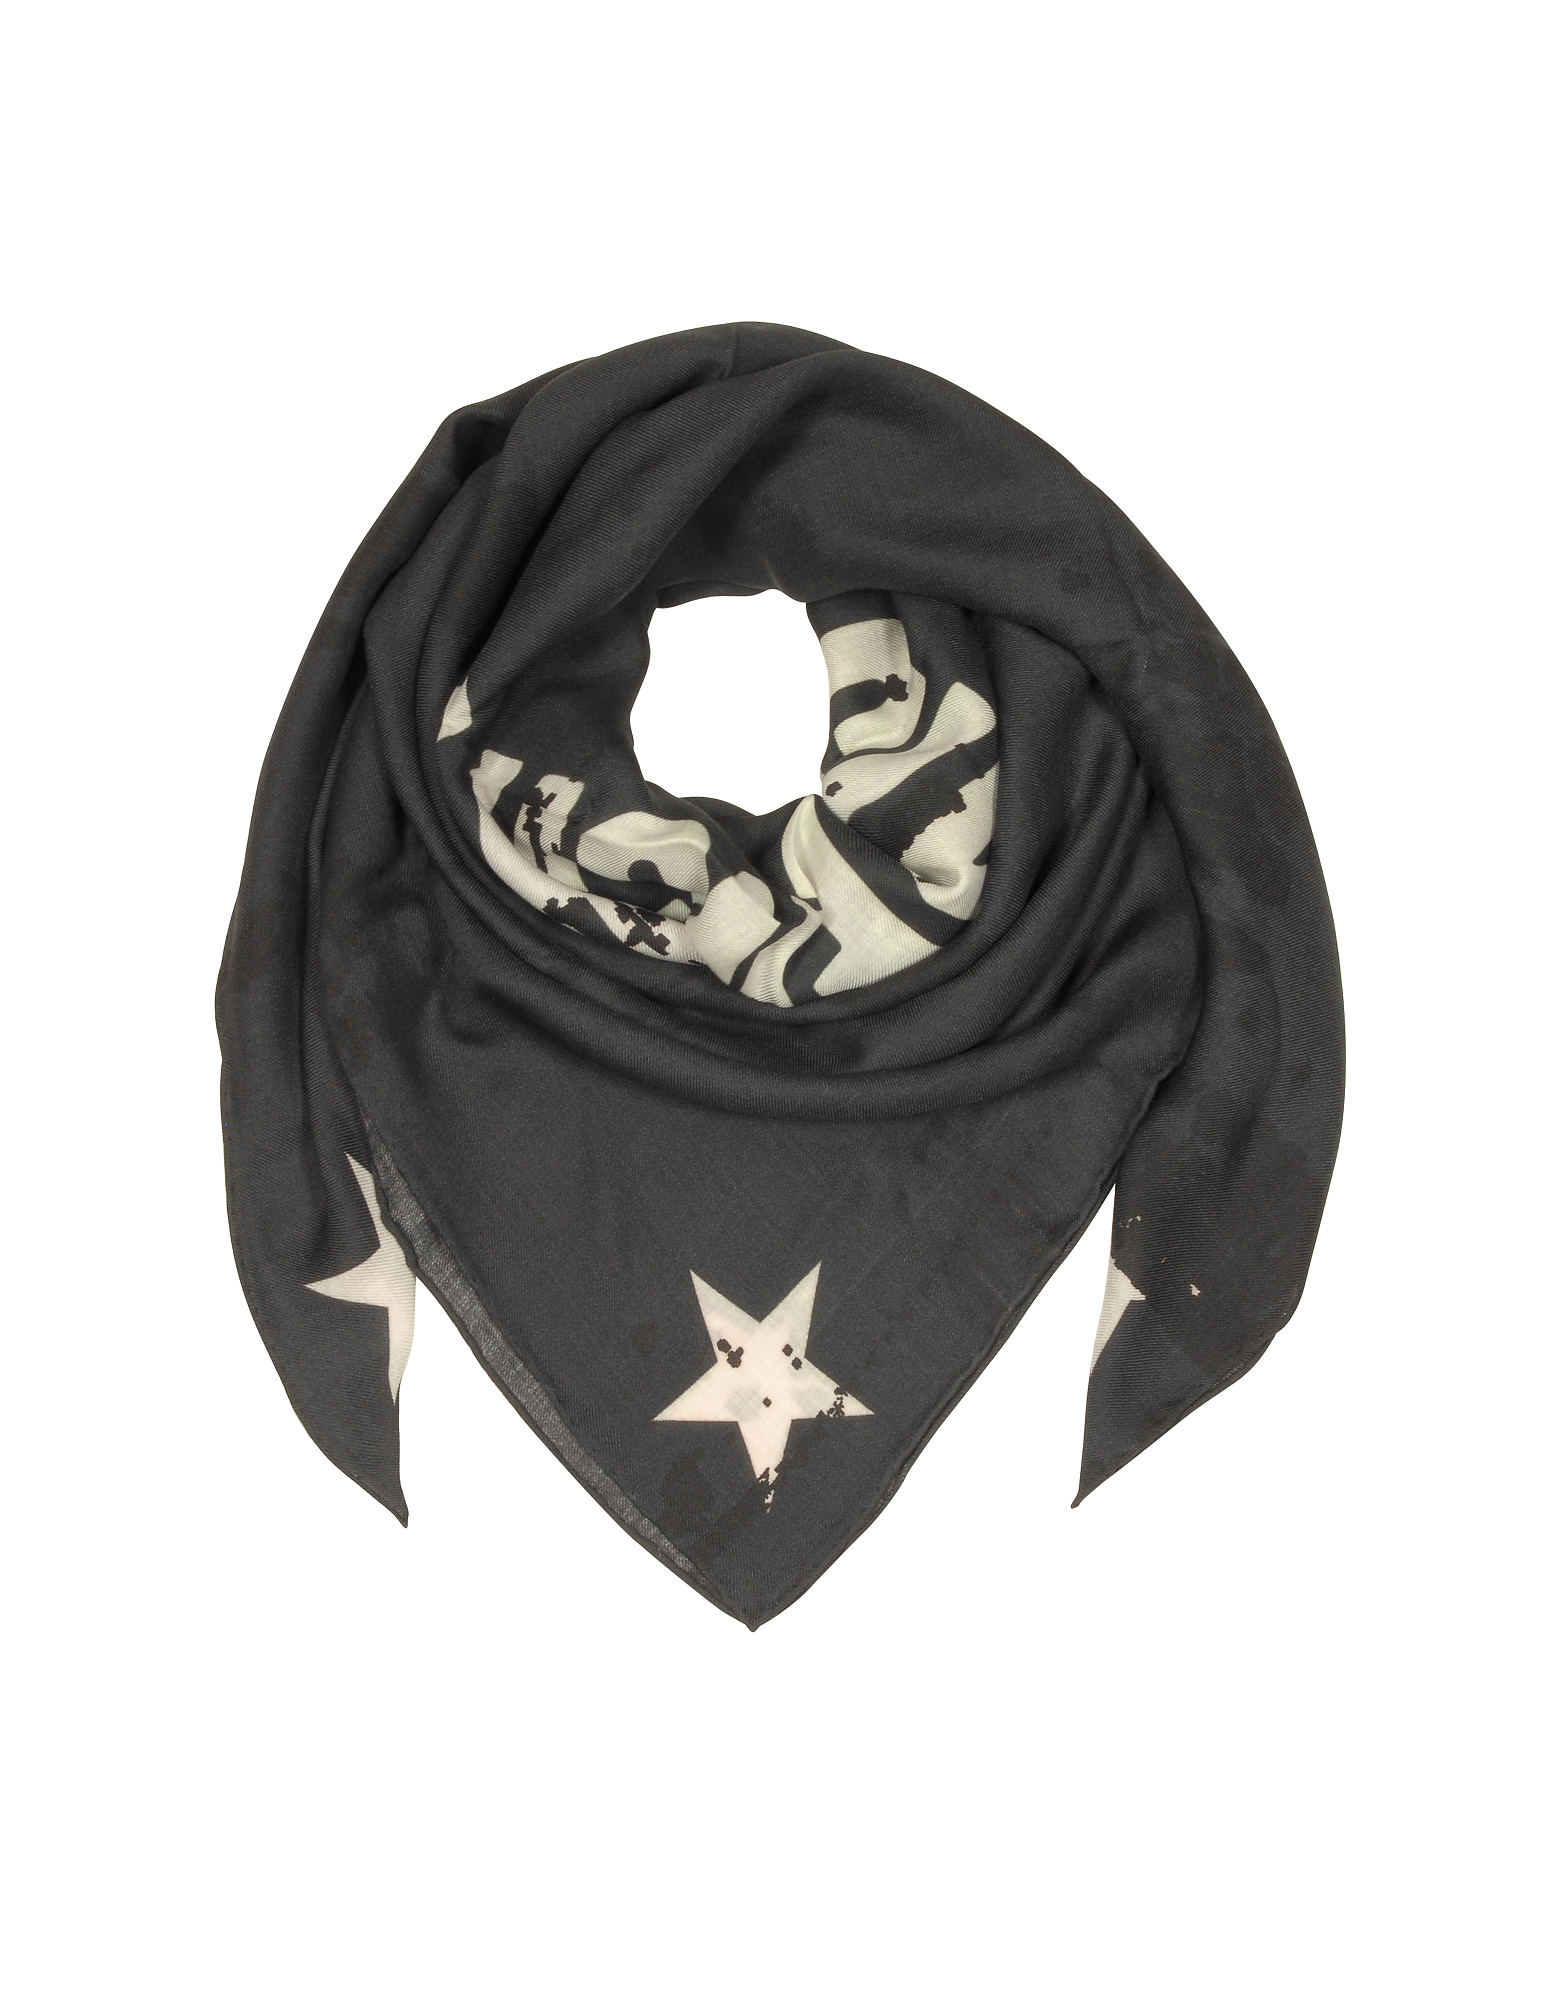 Givenchy Shawls & Wraps, Black Wool and Silk Signature Print Wrap